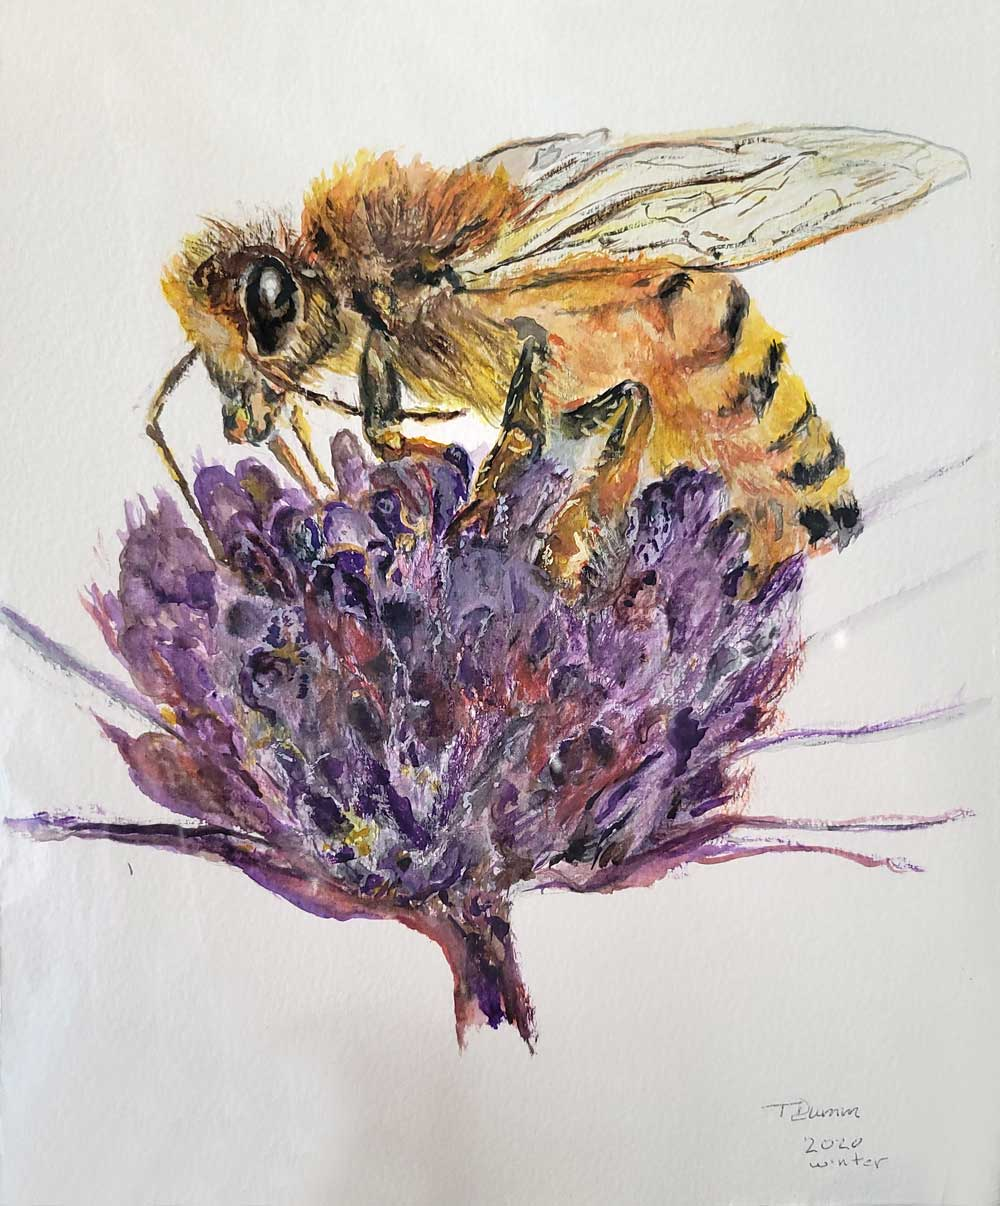 Watercolor by Tom Dumm - Bee on Flower